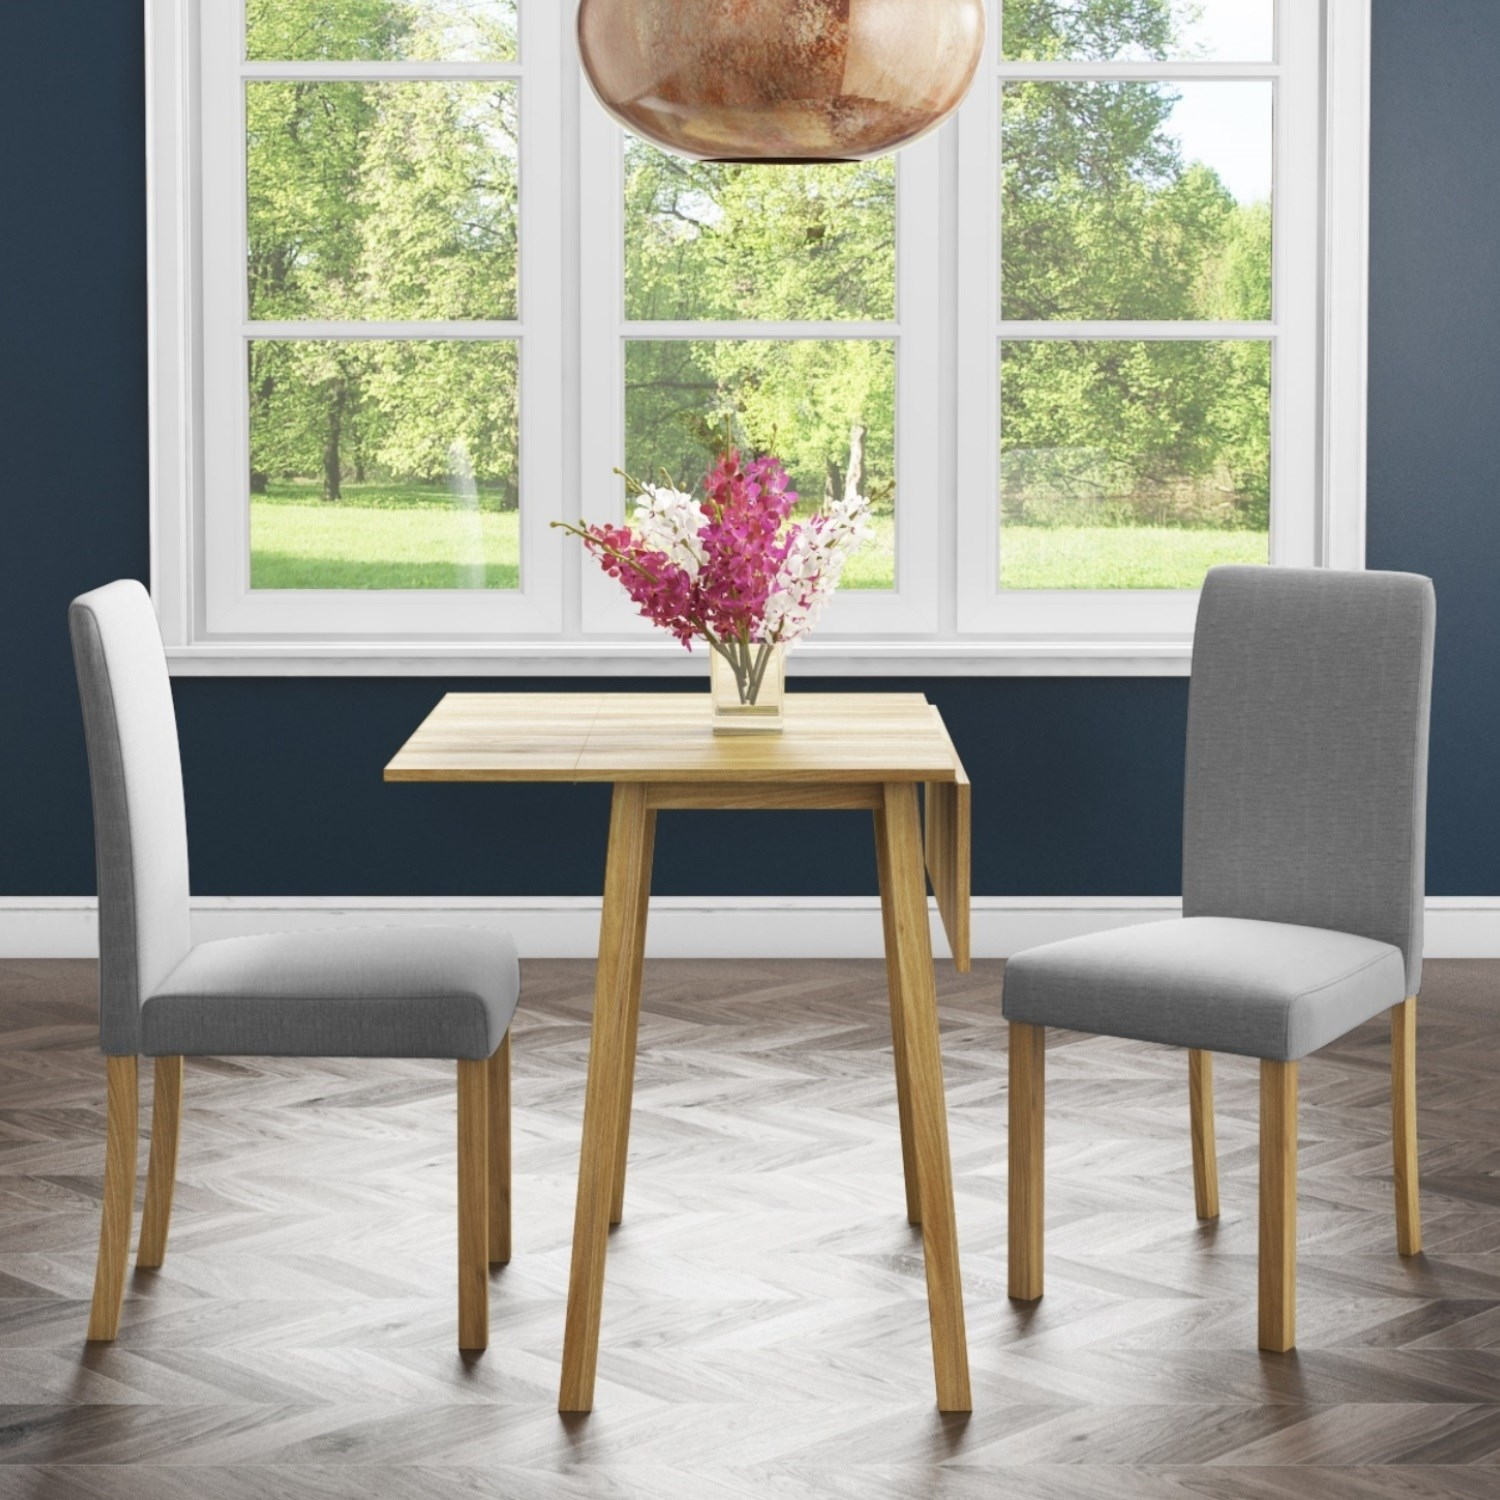 New Haven Oak Dining Set With Small Drop Leaf Table 2 Grey Fabric Chairs Furniture123